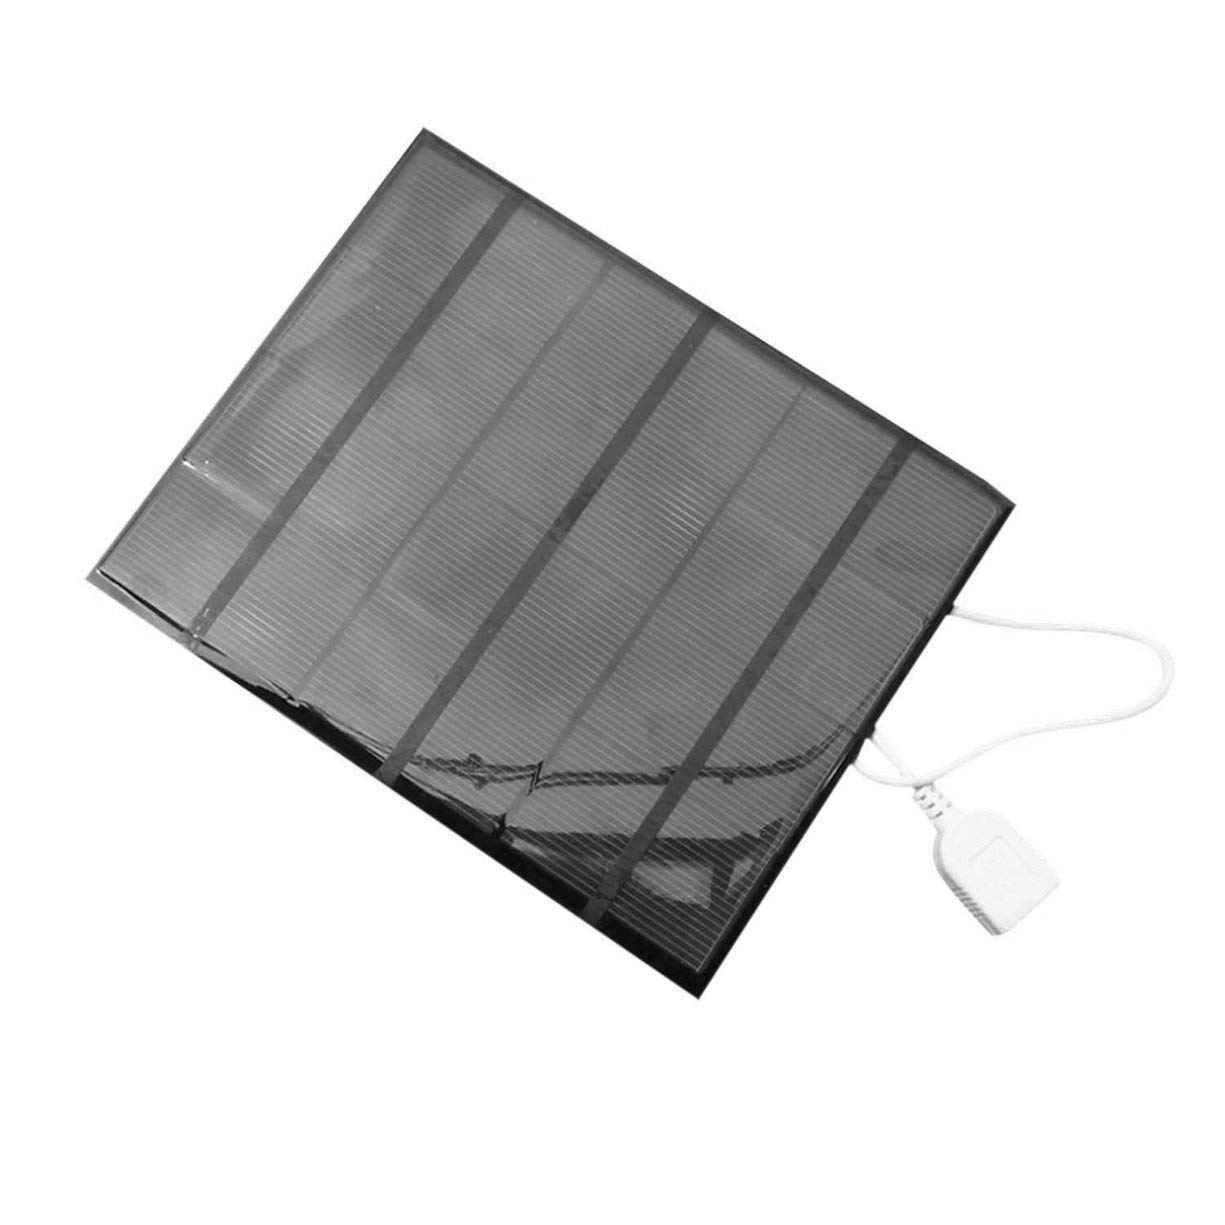 3.5W 6V USB Solar Panel Power Bank External Battery Charger Outdoor Travelling DIY Charger For Mobile Phone Tablet